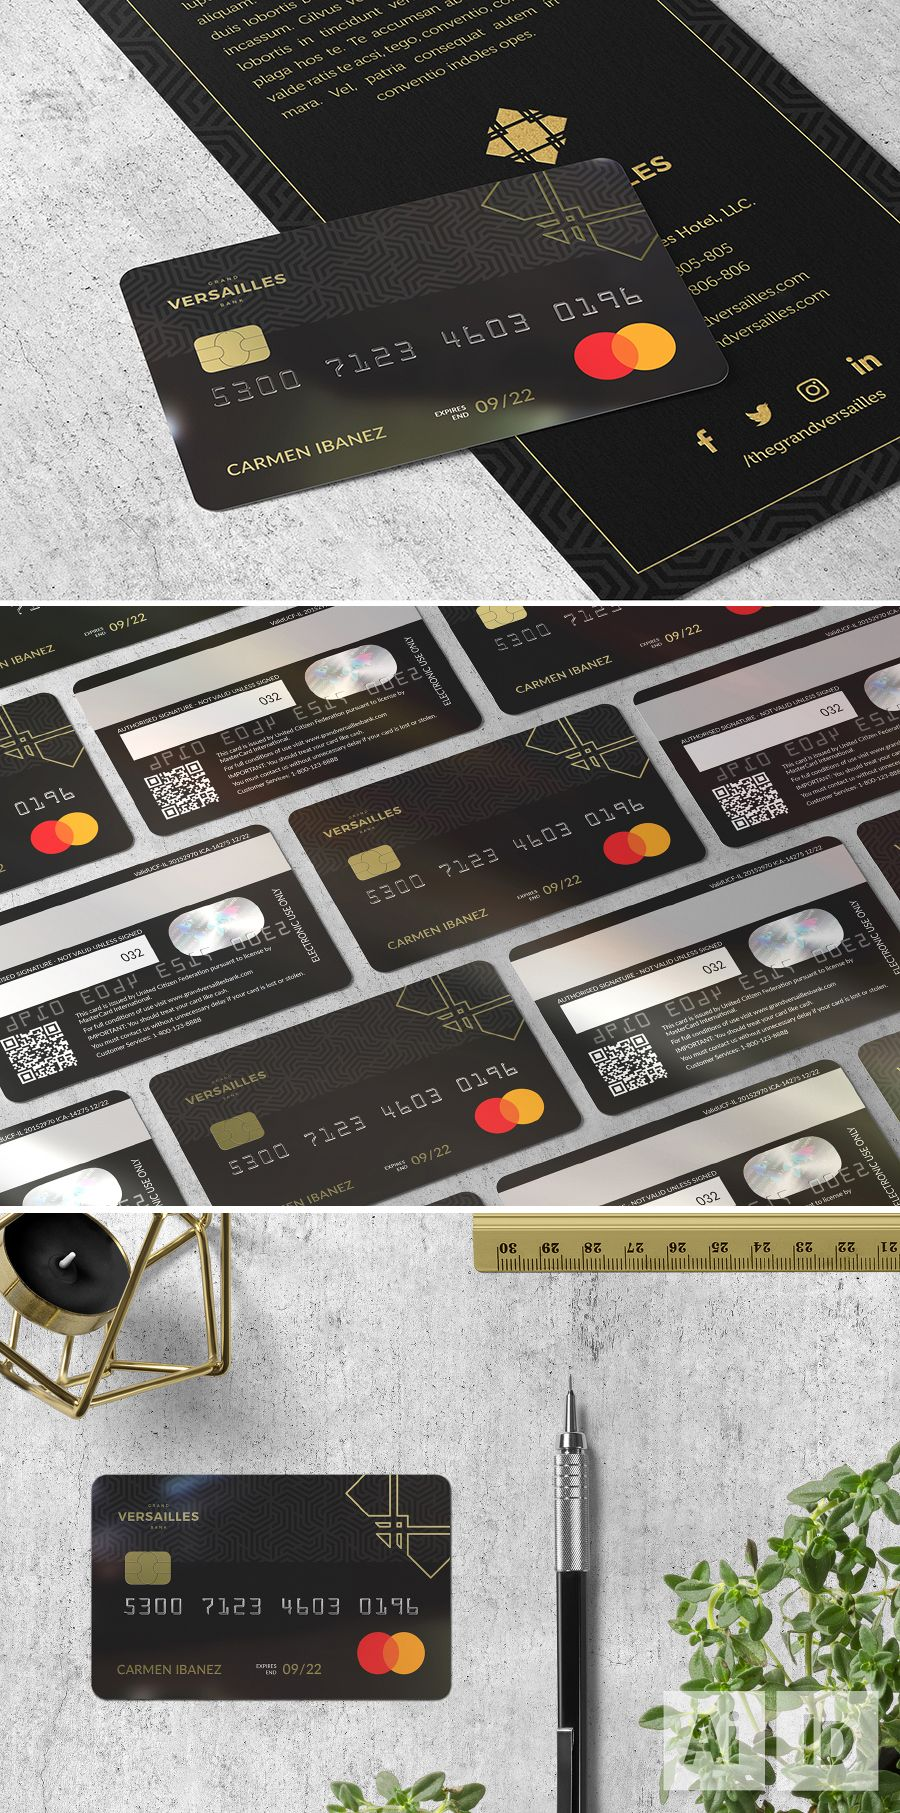 Grand Versailles Bank Card Bank Card Trifold Templates Luxury Card